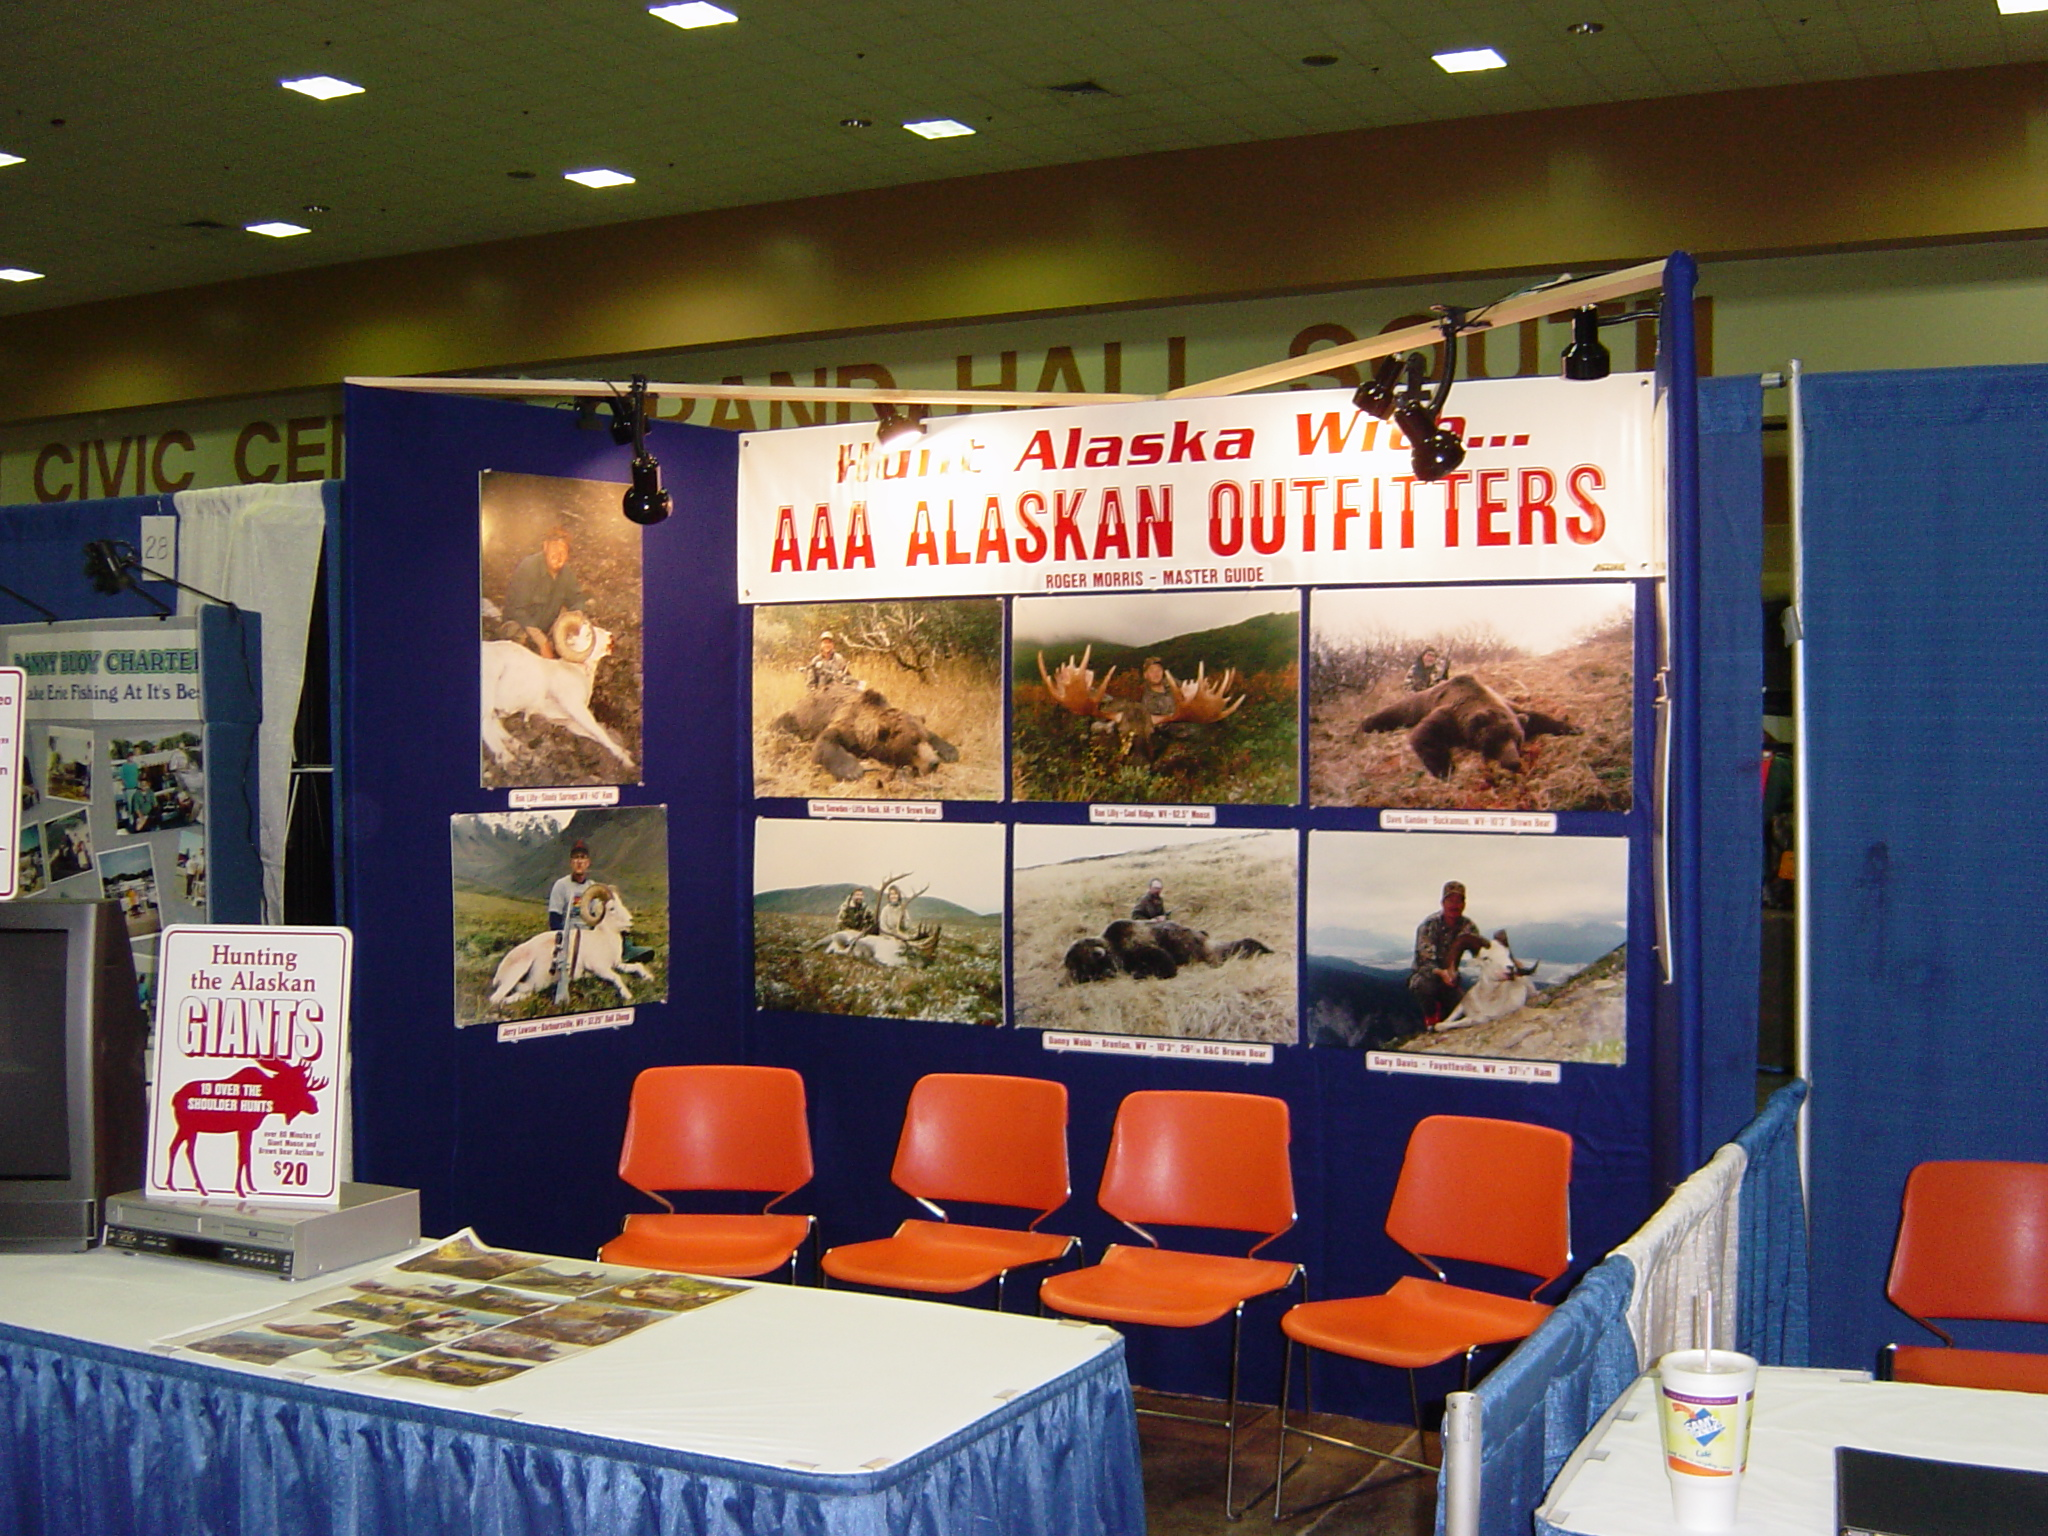 My booth at one of the last WV Hunting shows that I attended. All of the poster photos are WV hunters.